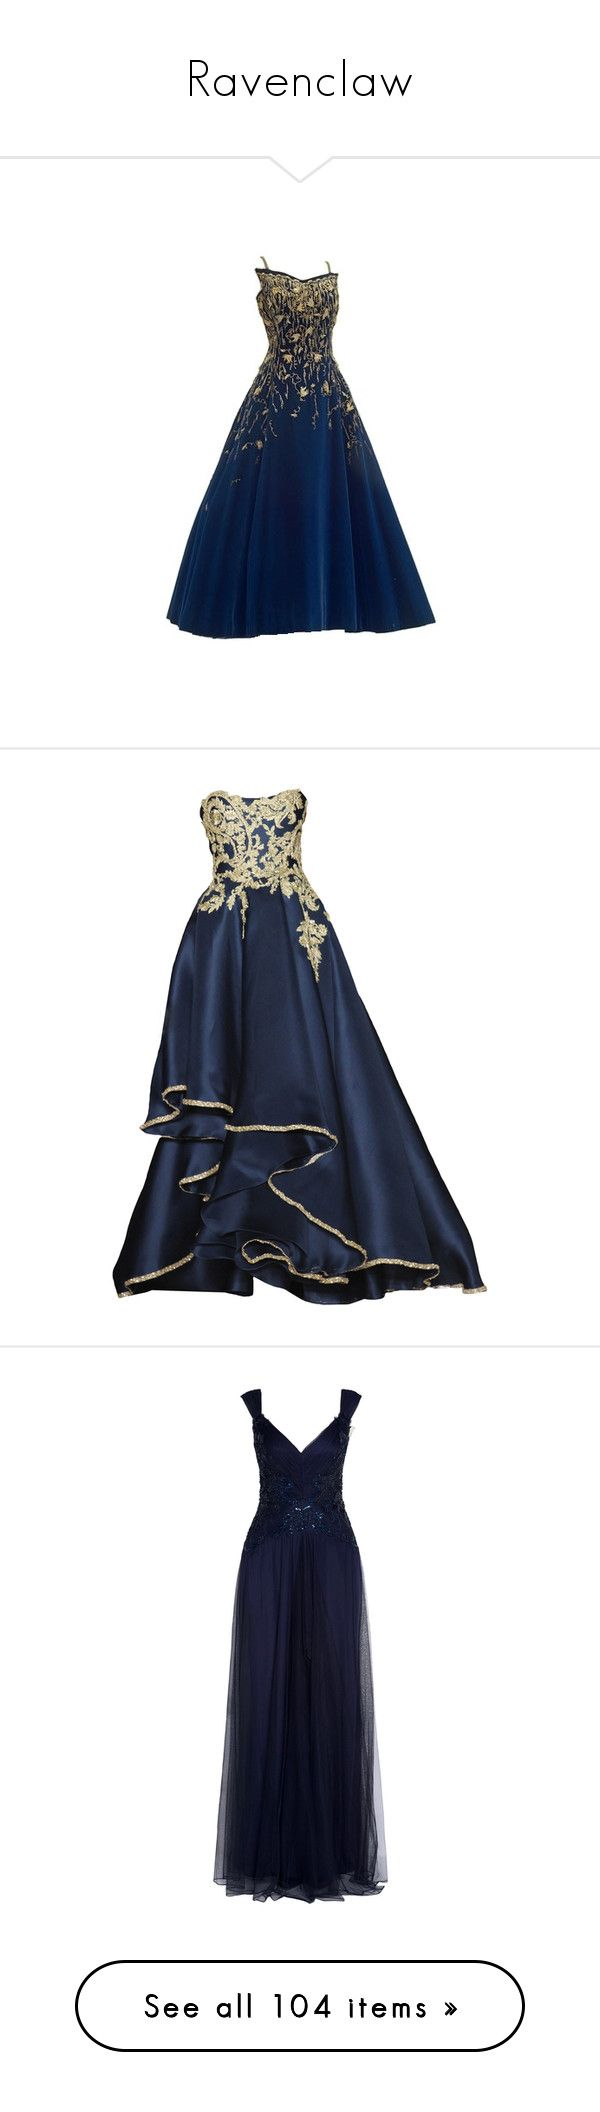 """Ravenclaw"" by xx-broken-ones-xx ❤ liked on Polyvore featuring dresses, gowns, long dress, long dresses, vestidos, long blue evening dress, blue ball gown, marchesa evening gowns, marchesa dresses and blue evening gown"